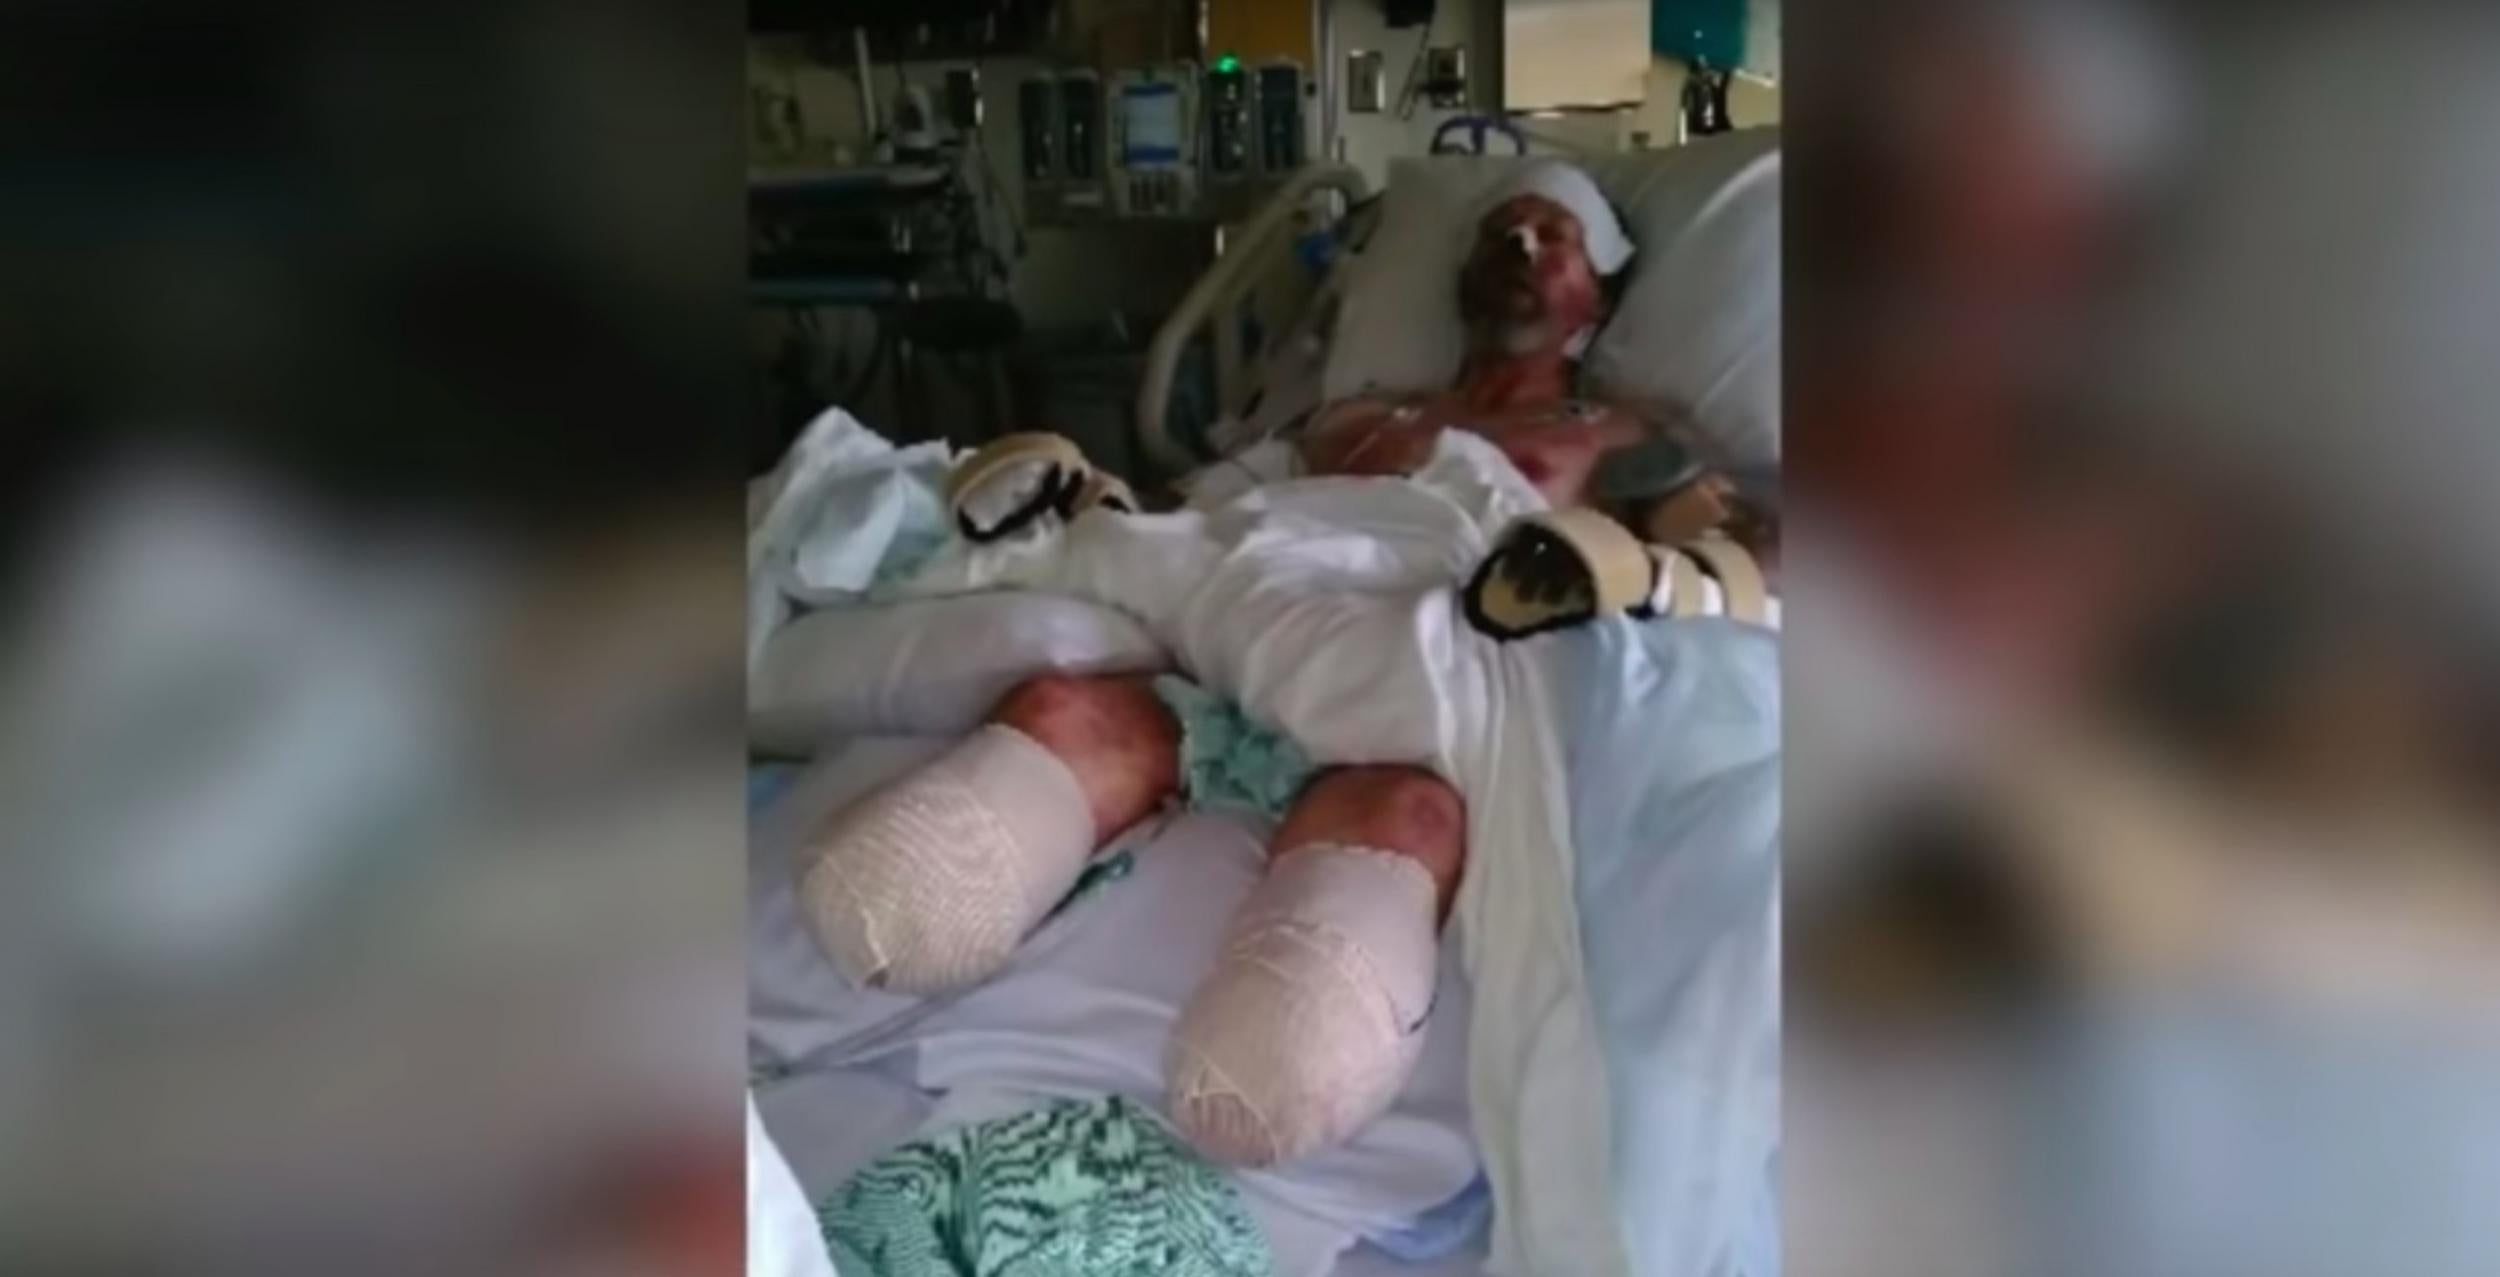 Man has limbs amputated after being licked by a dog | The Independent